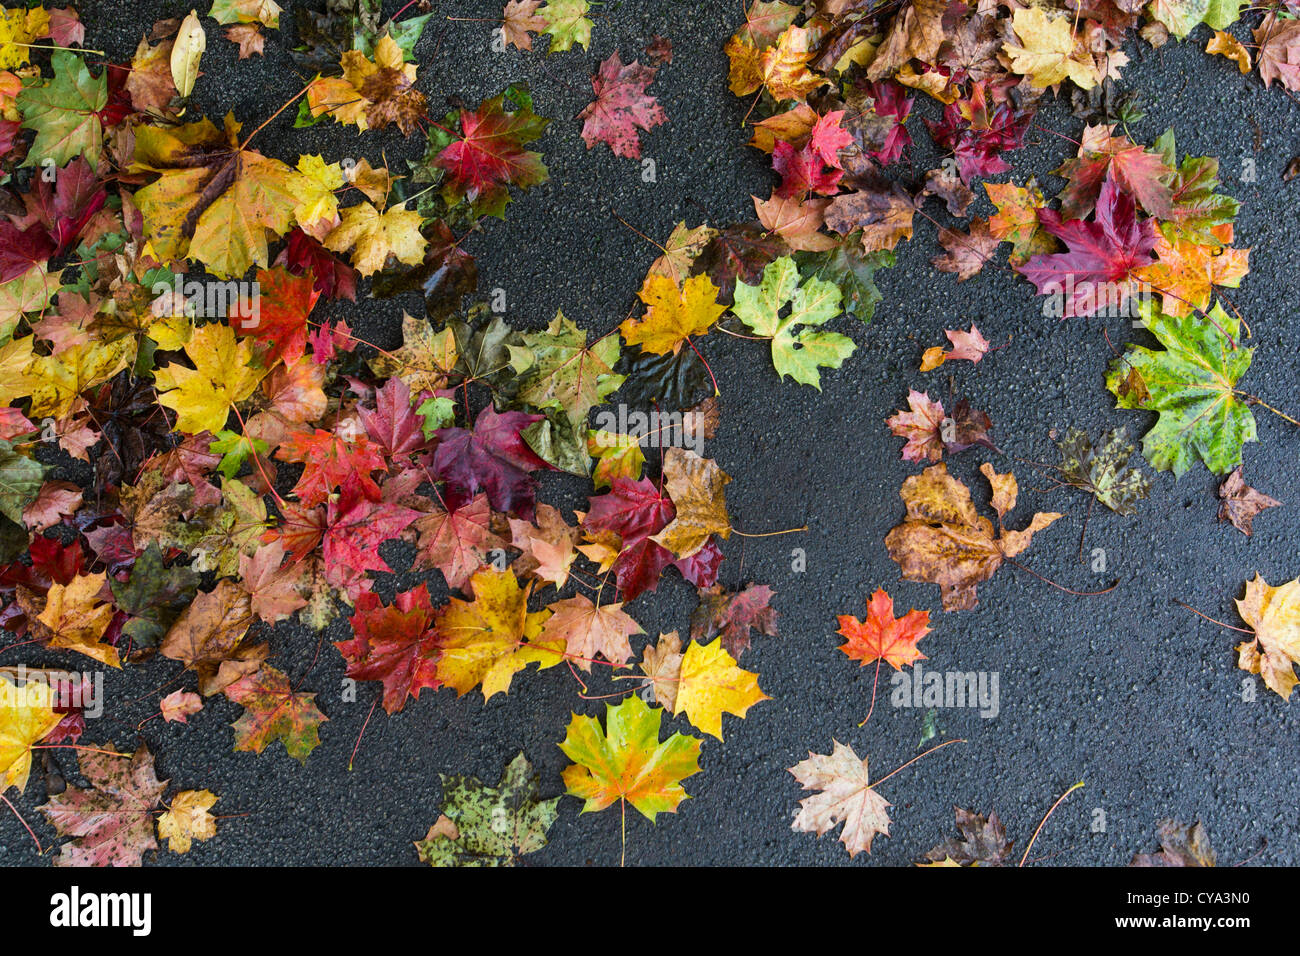 Wet Autumn leaves lying on a tarmac path in Birmingham, UK - Stock Image